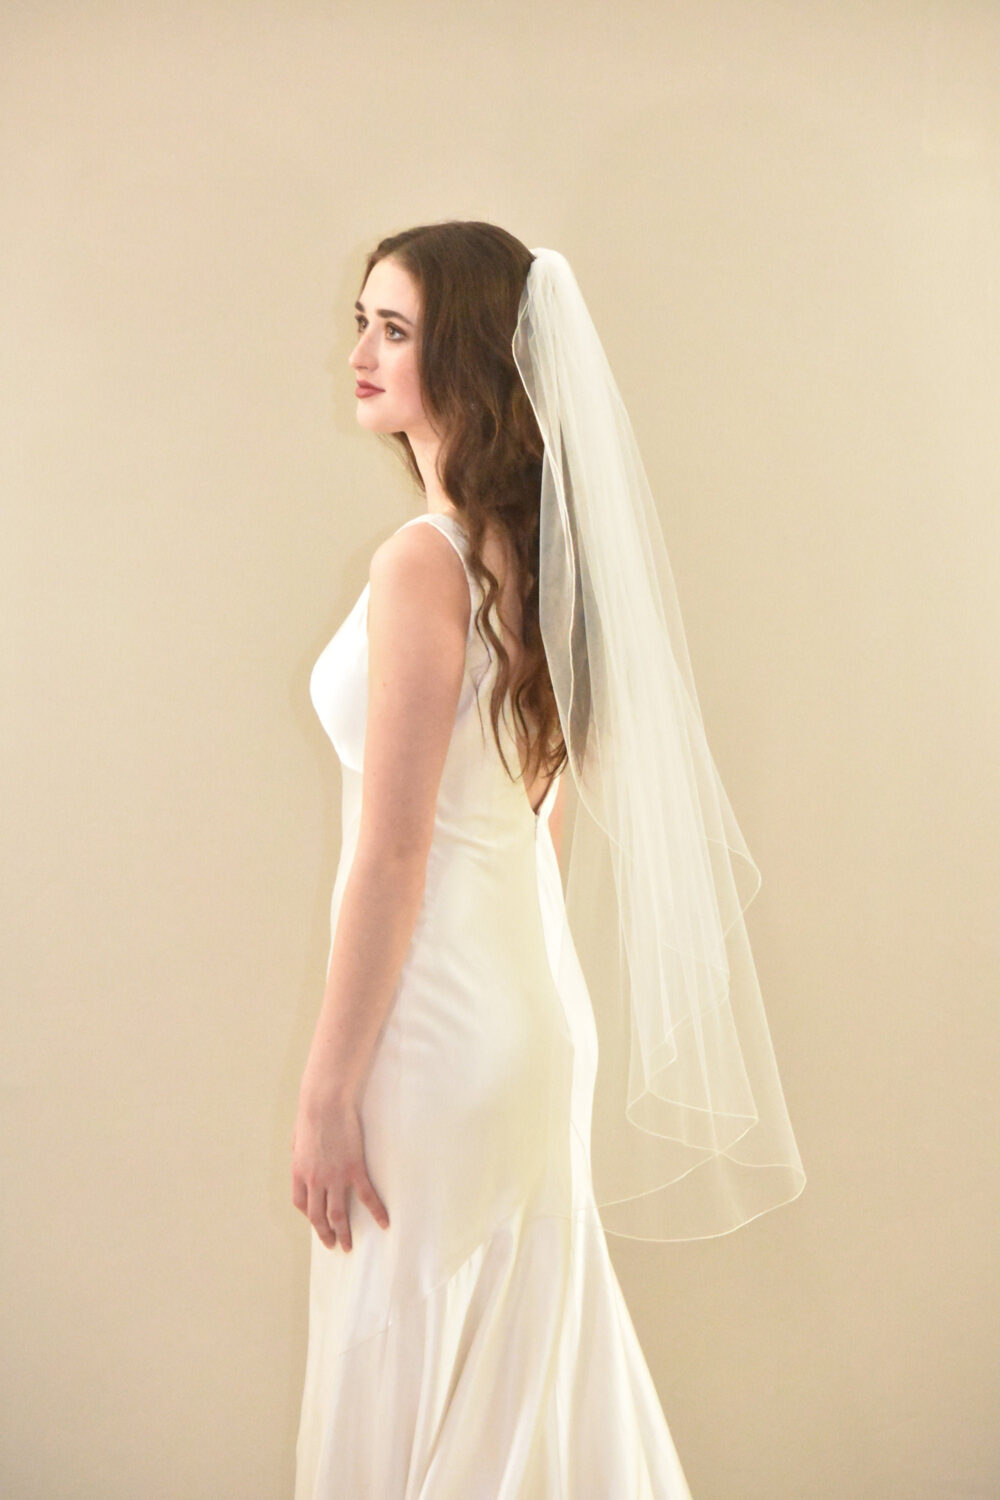 Classic Cut Sheer Fingertip Veil | Pencil Edge Length Mid Wedding Simple